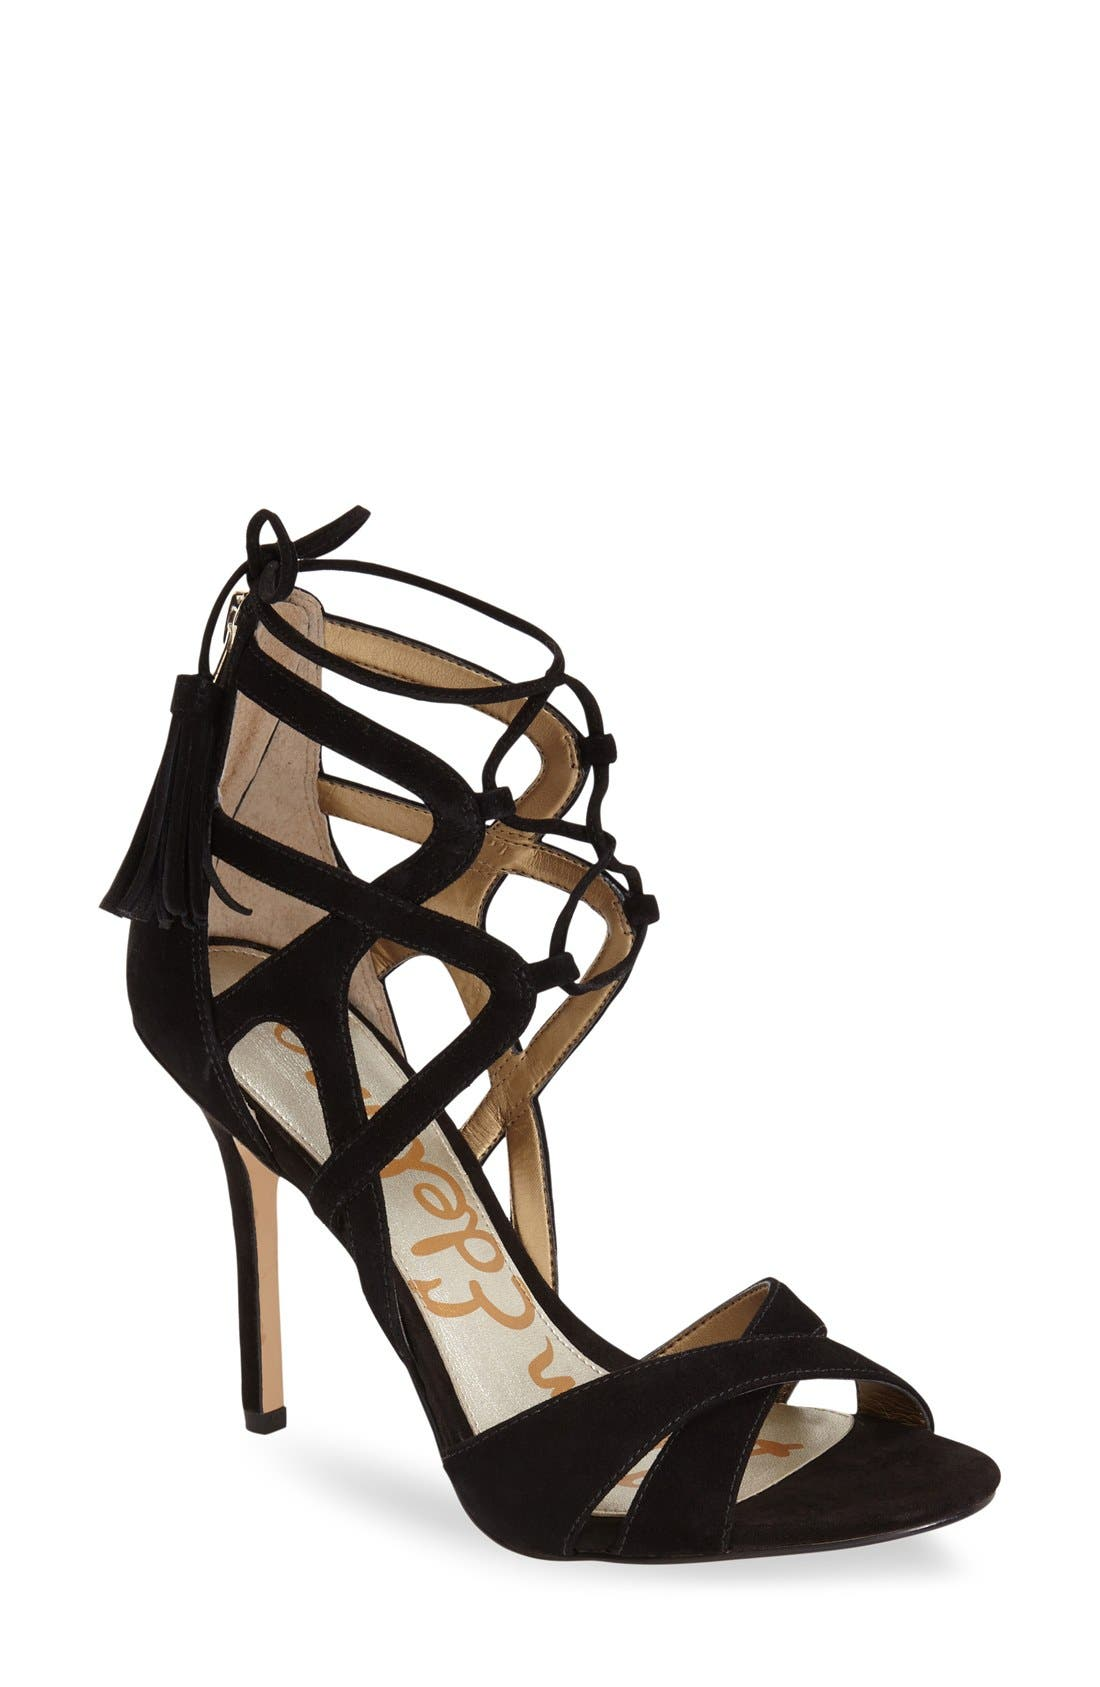 Alternate Image 1 Selected - Sam Edelman 'Azela' Tasseled Lace-Up Sandal (Women)